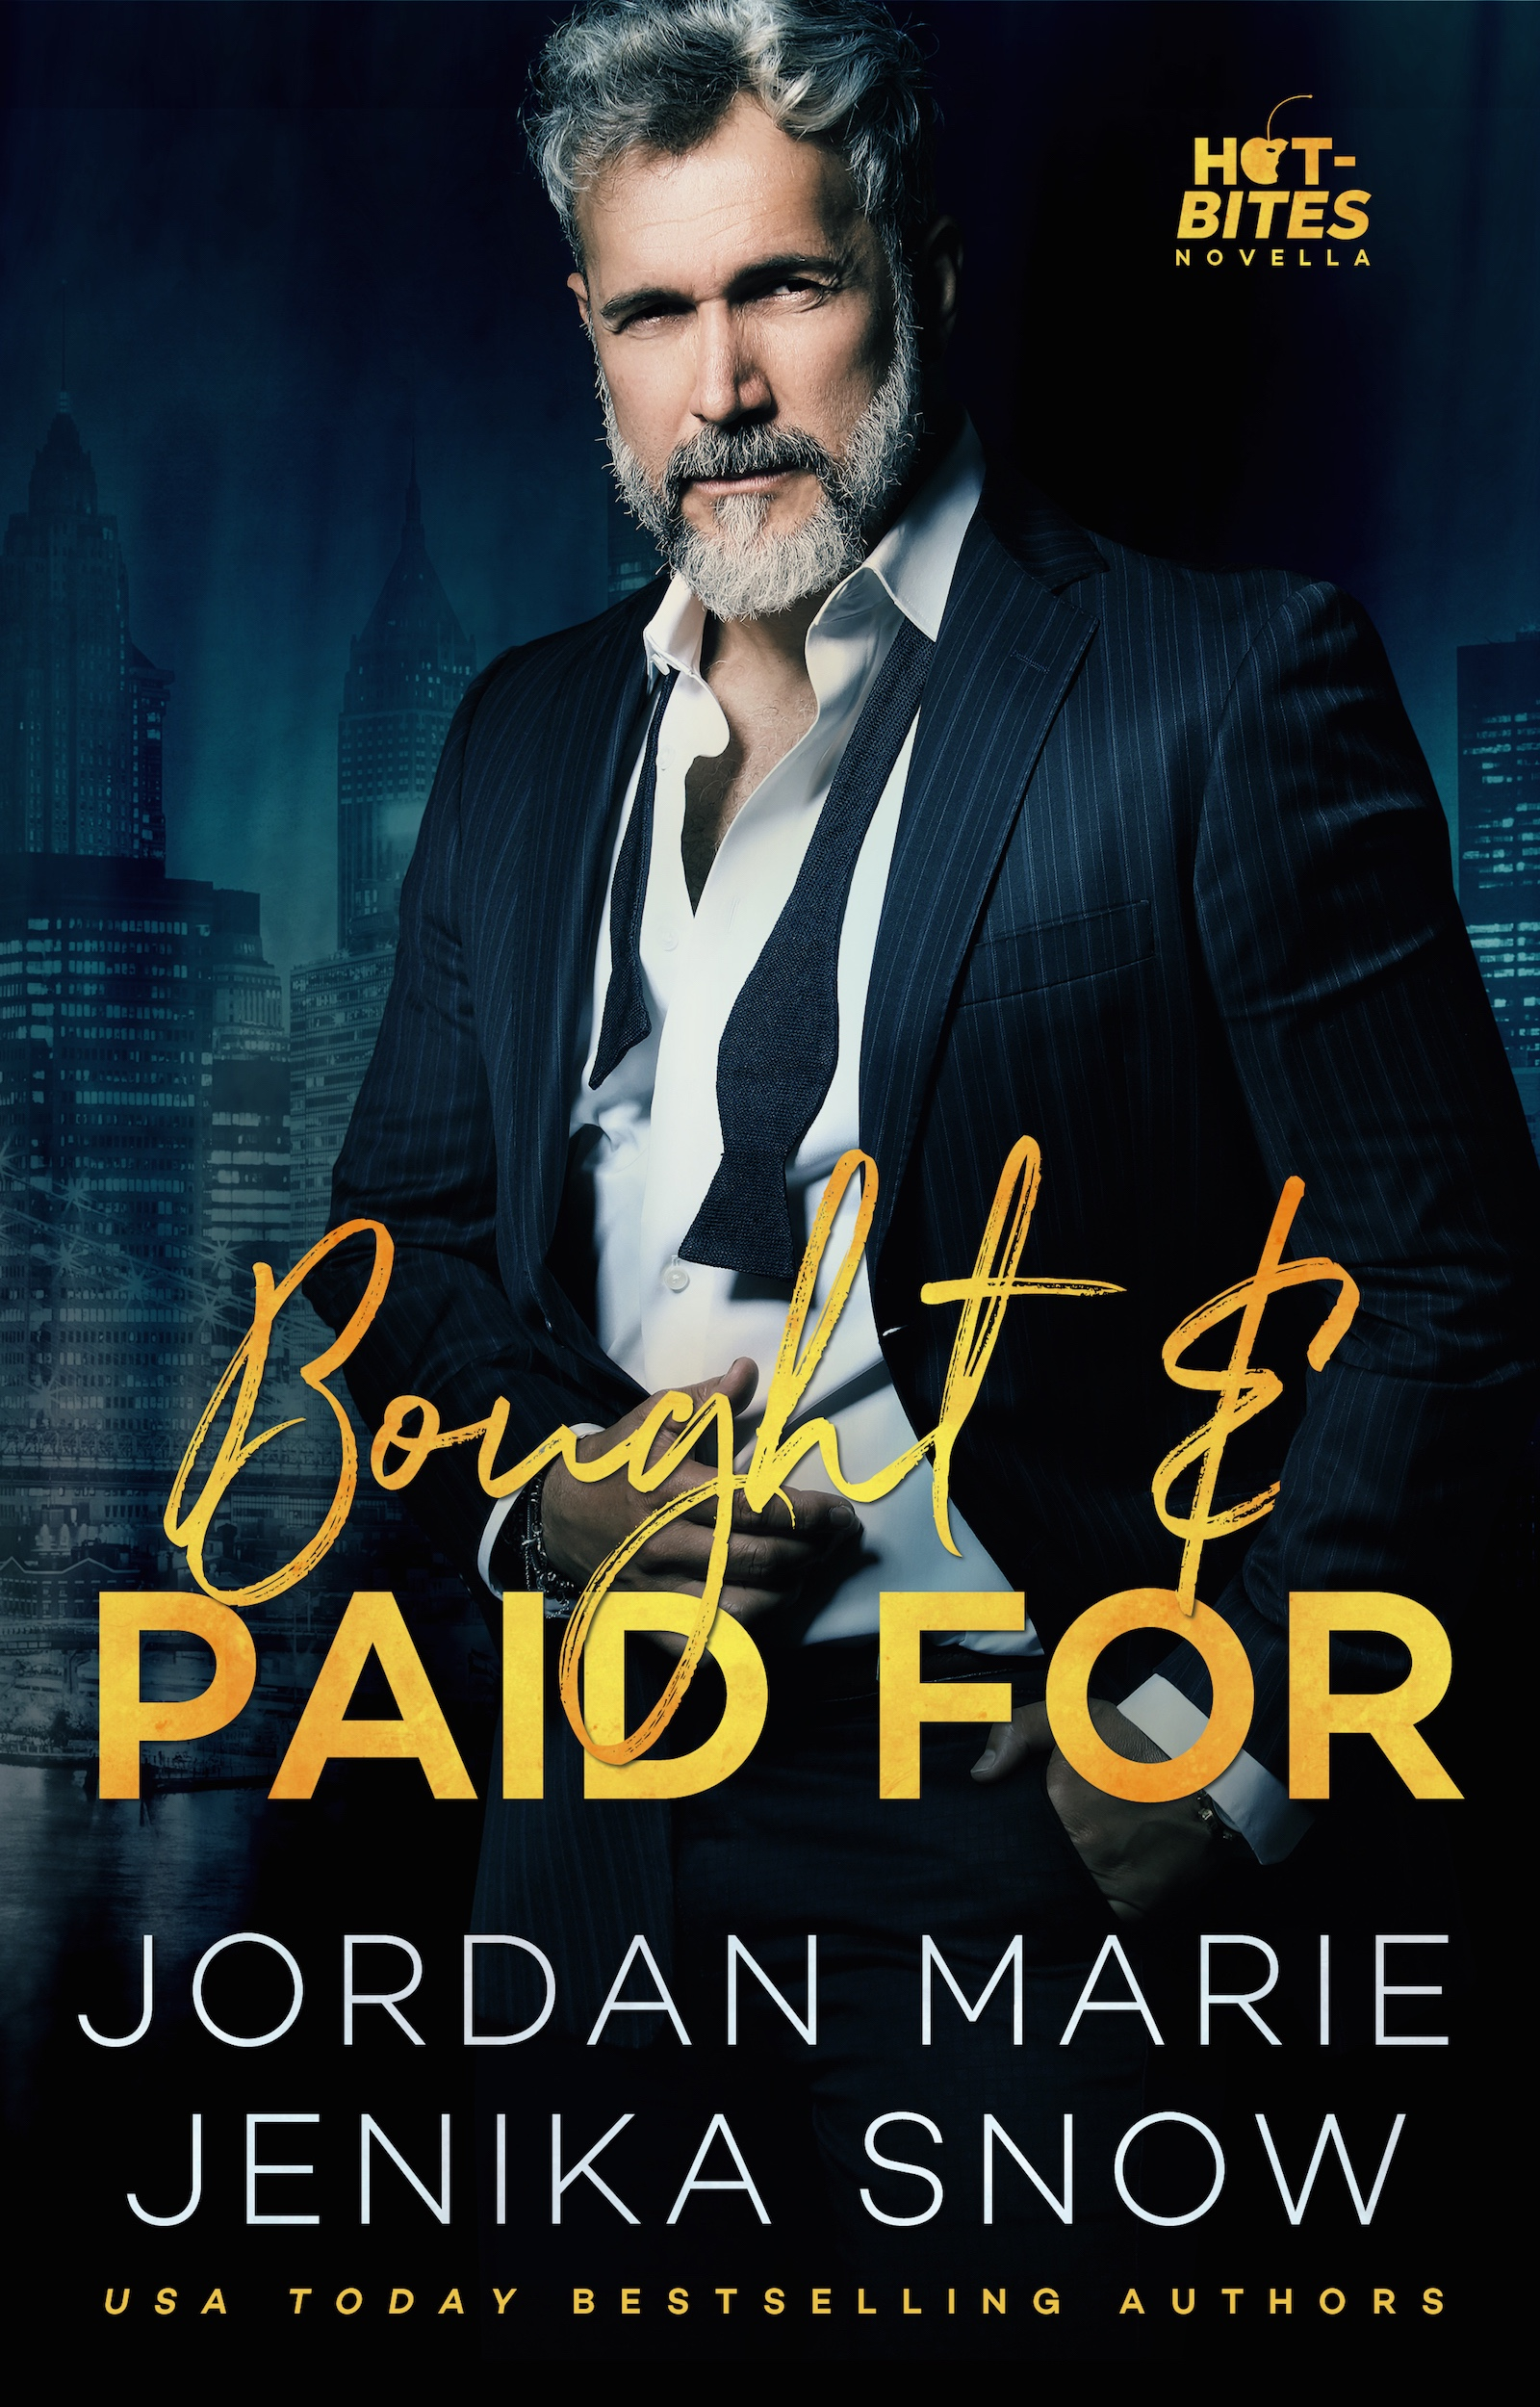 JMBoughtandPaidForBookCover55x85_HIGH